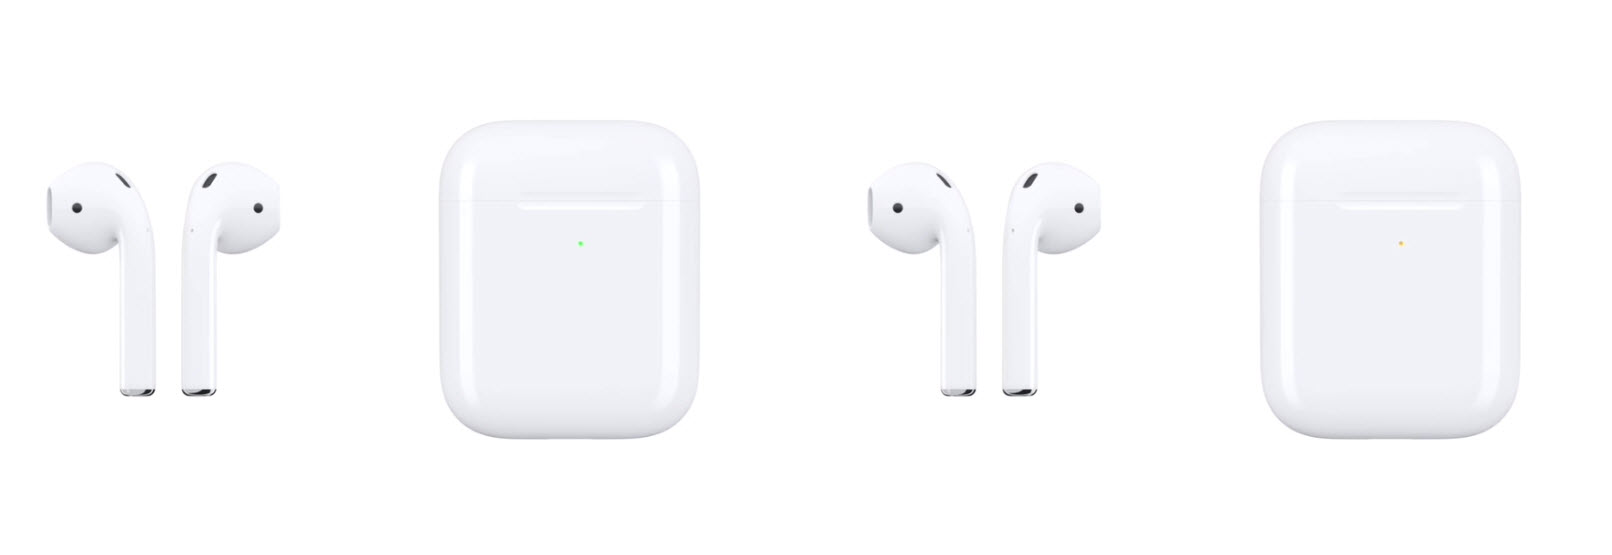 New Airpods Case Ios 12 Beta 5 Img 1